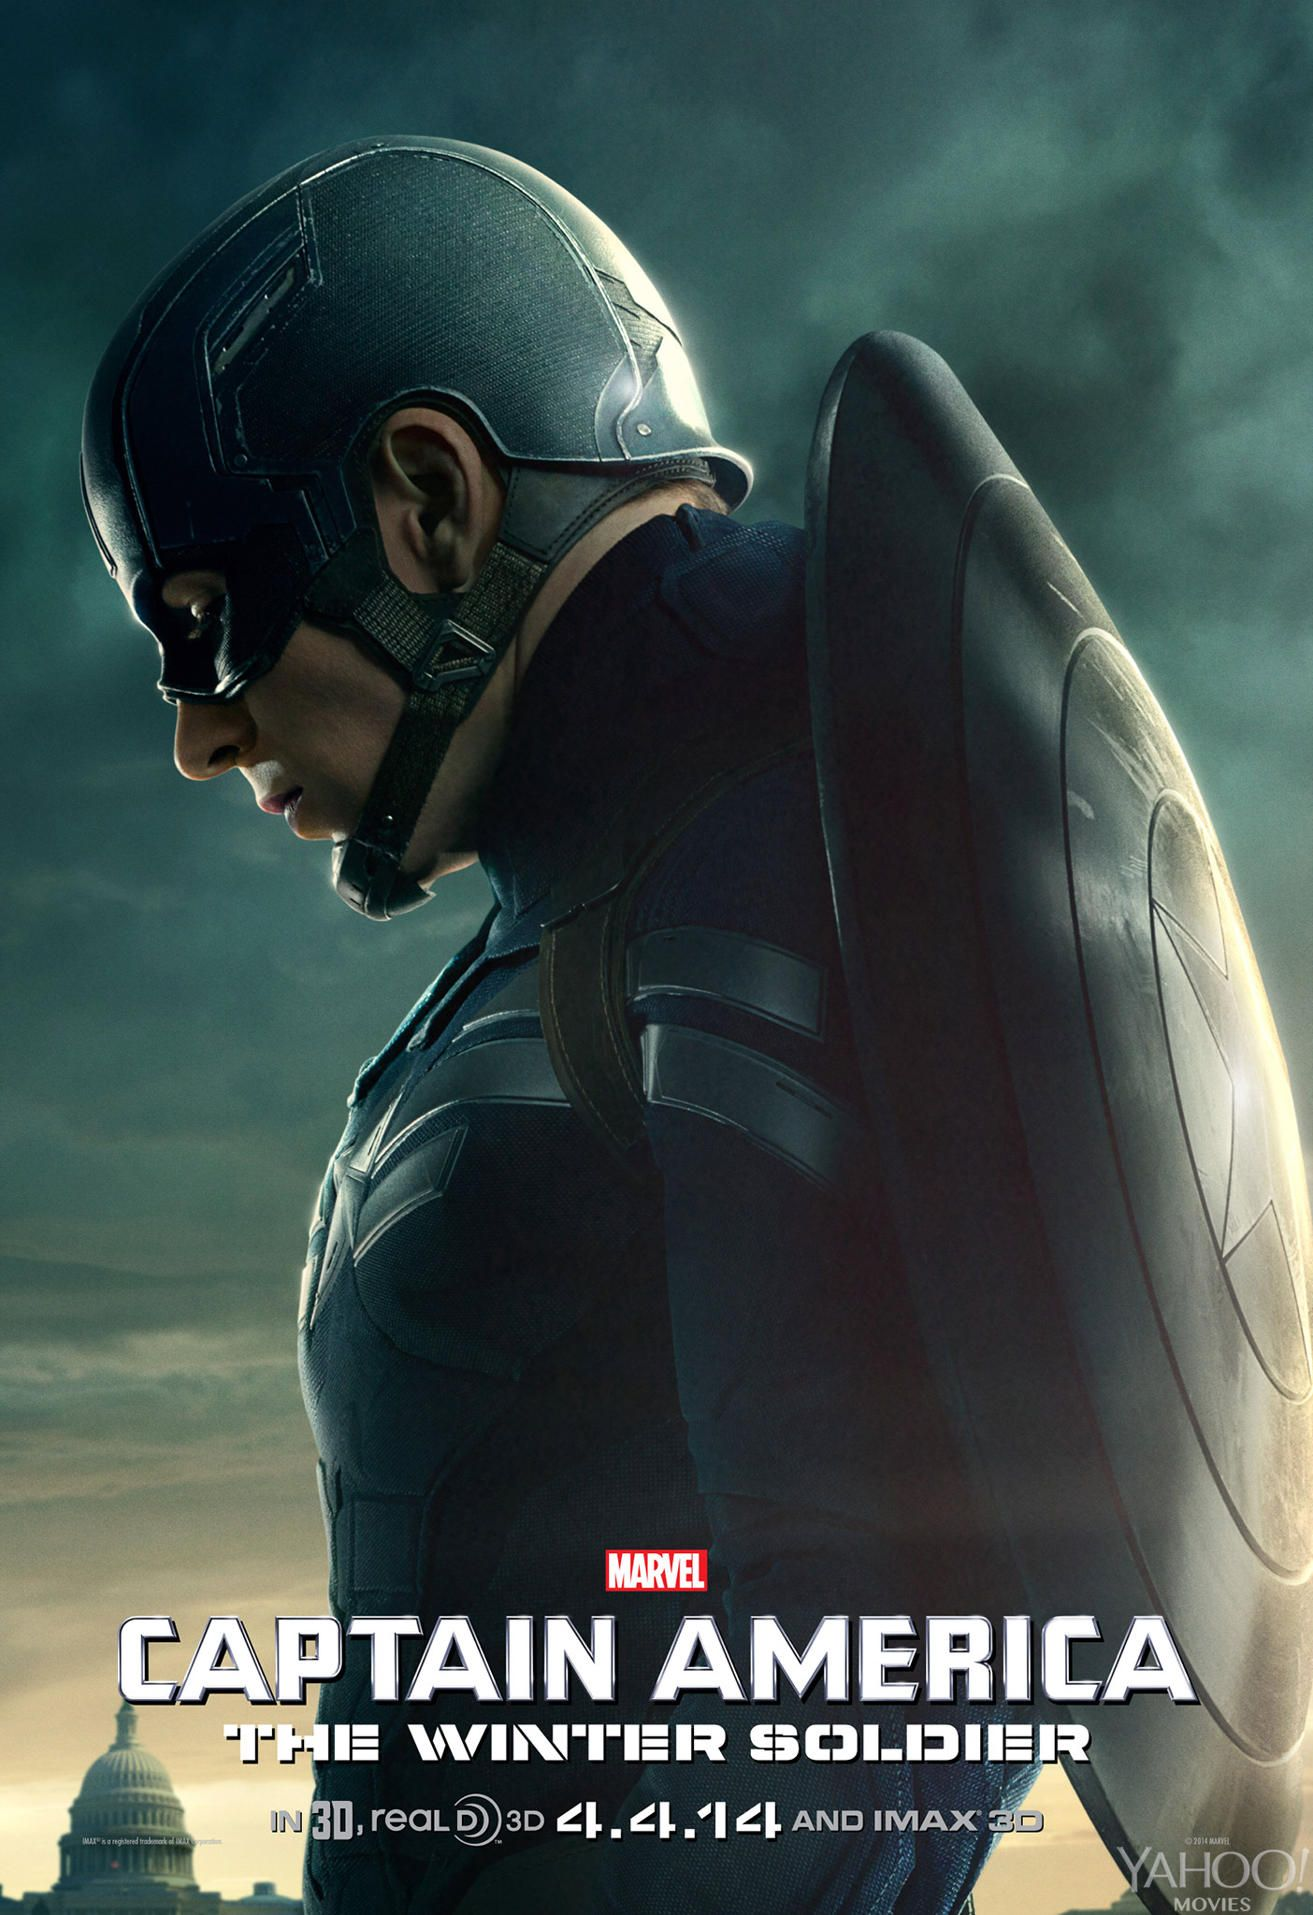 CAPTAIN AMERICA: THE WINTER SOLDIER Posters   Collider